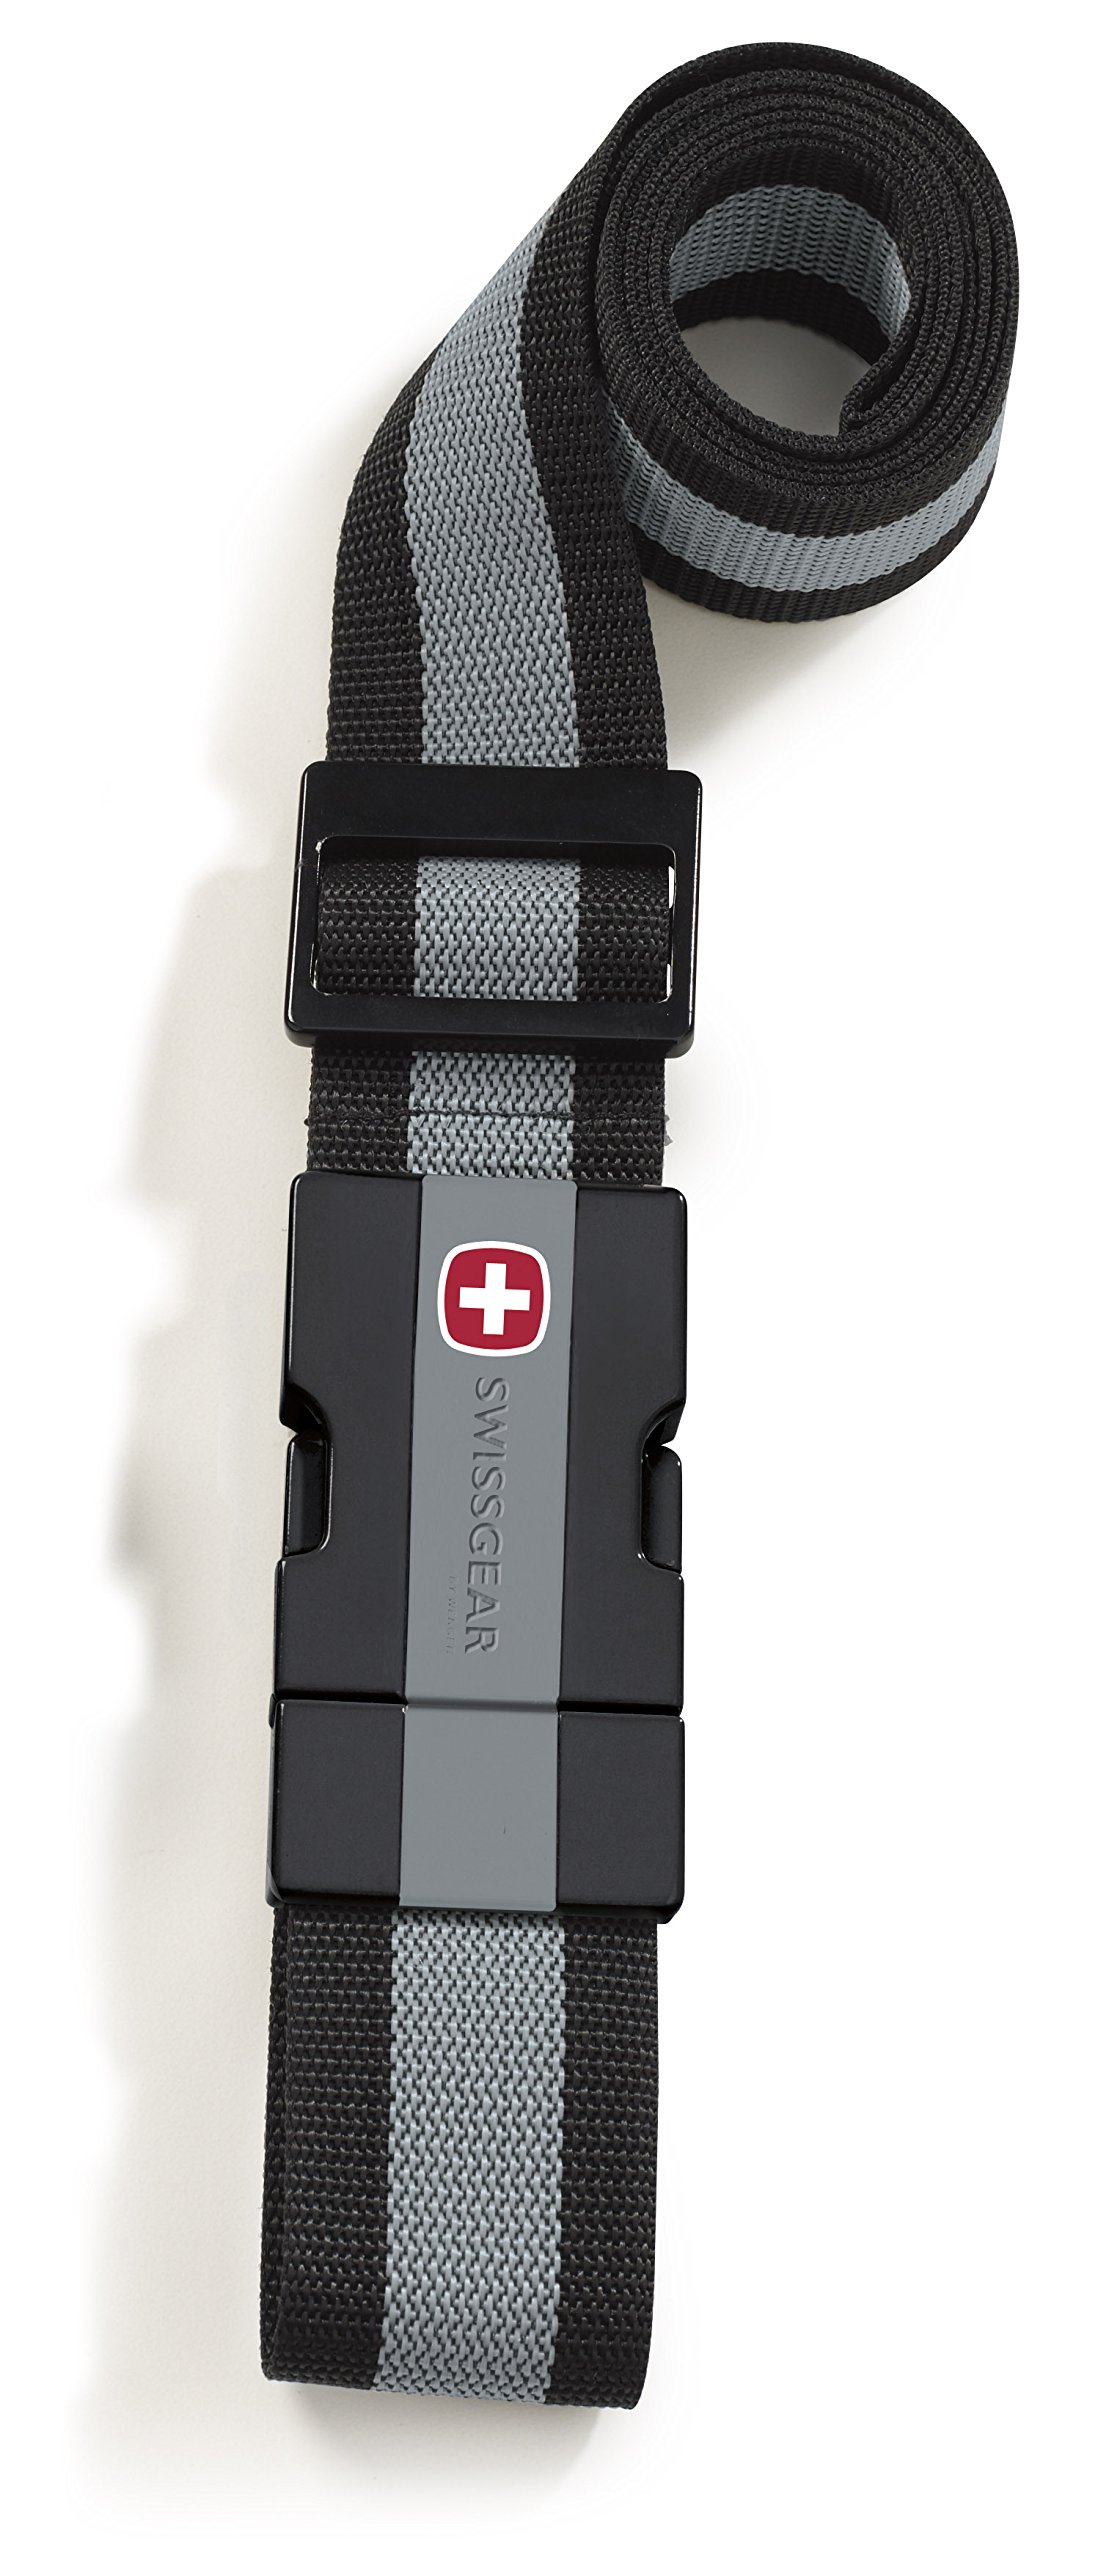 SwissGear Adjustable Luggage Strap with Snap-Lock Buckle - Fits Bags up to 72-Inches